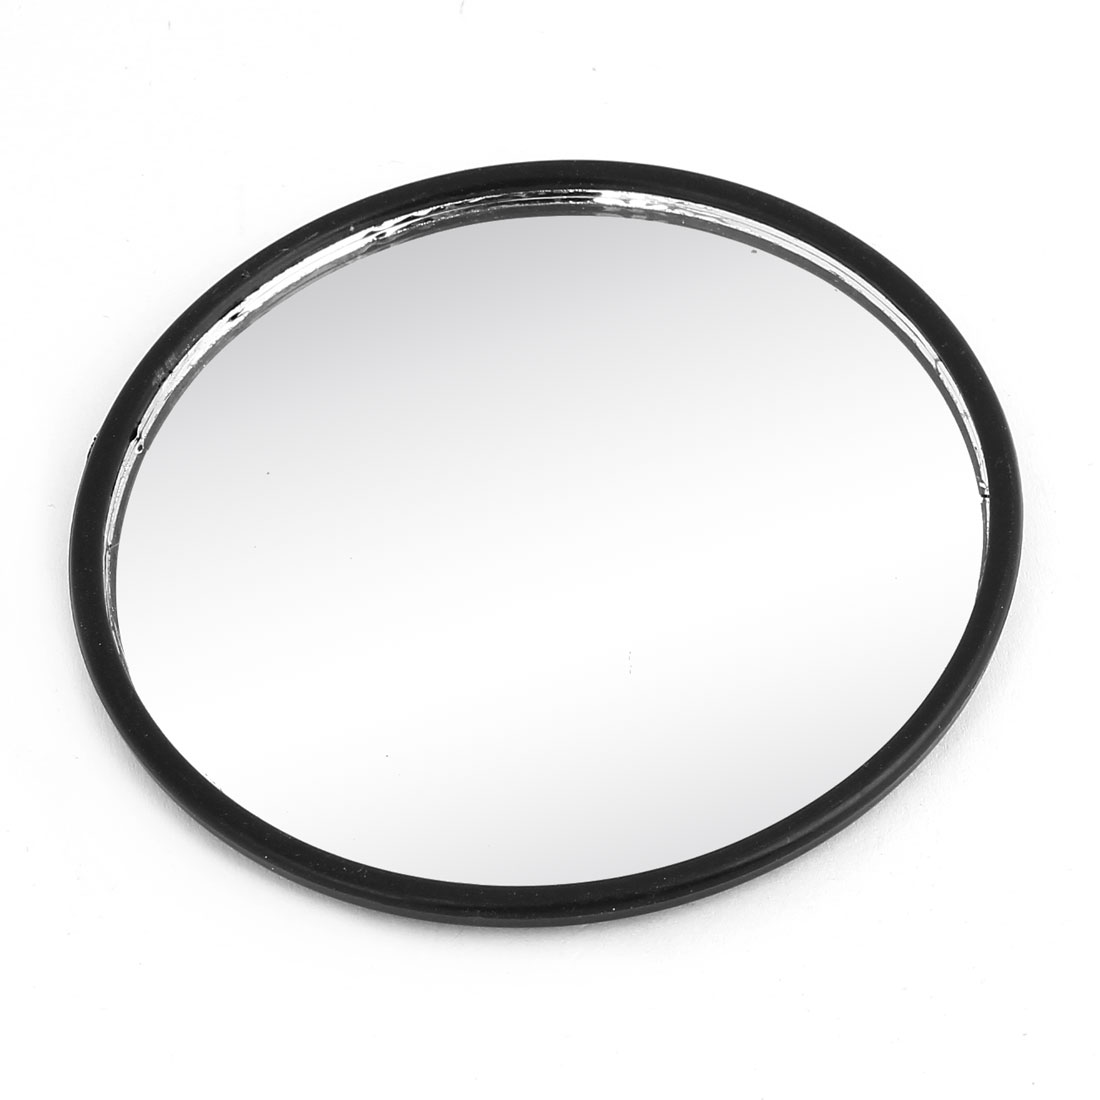 80mm Black Self Adhesive Wide Angle Round Convex Car Rear View Blind Spot Mirror